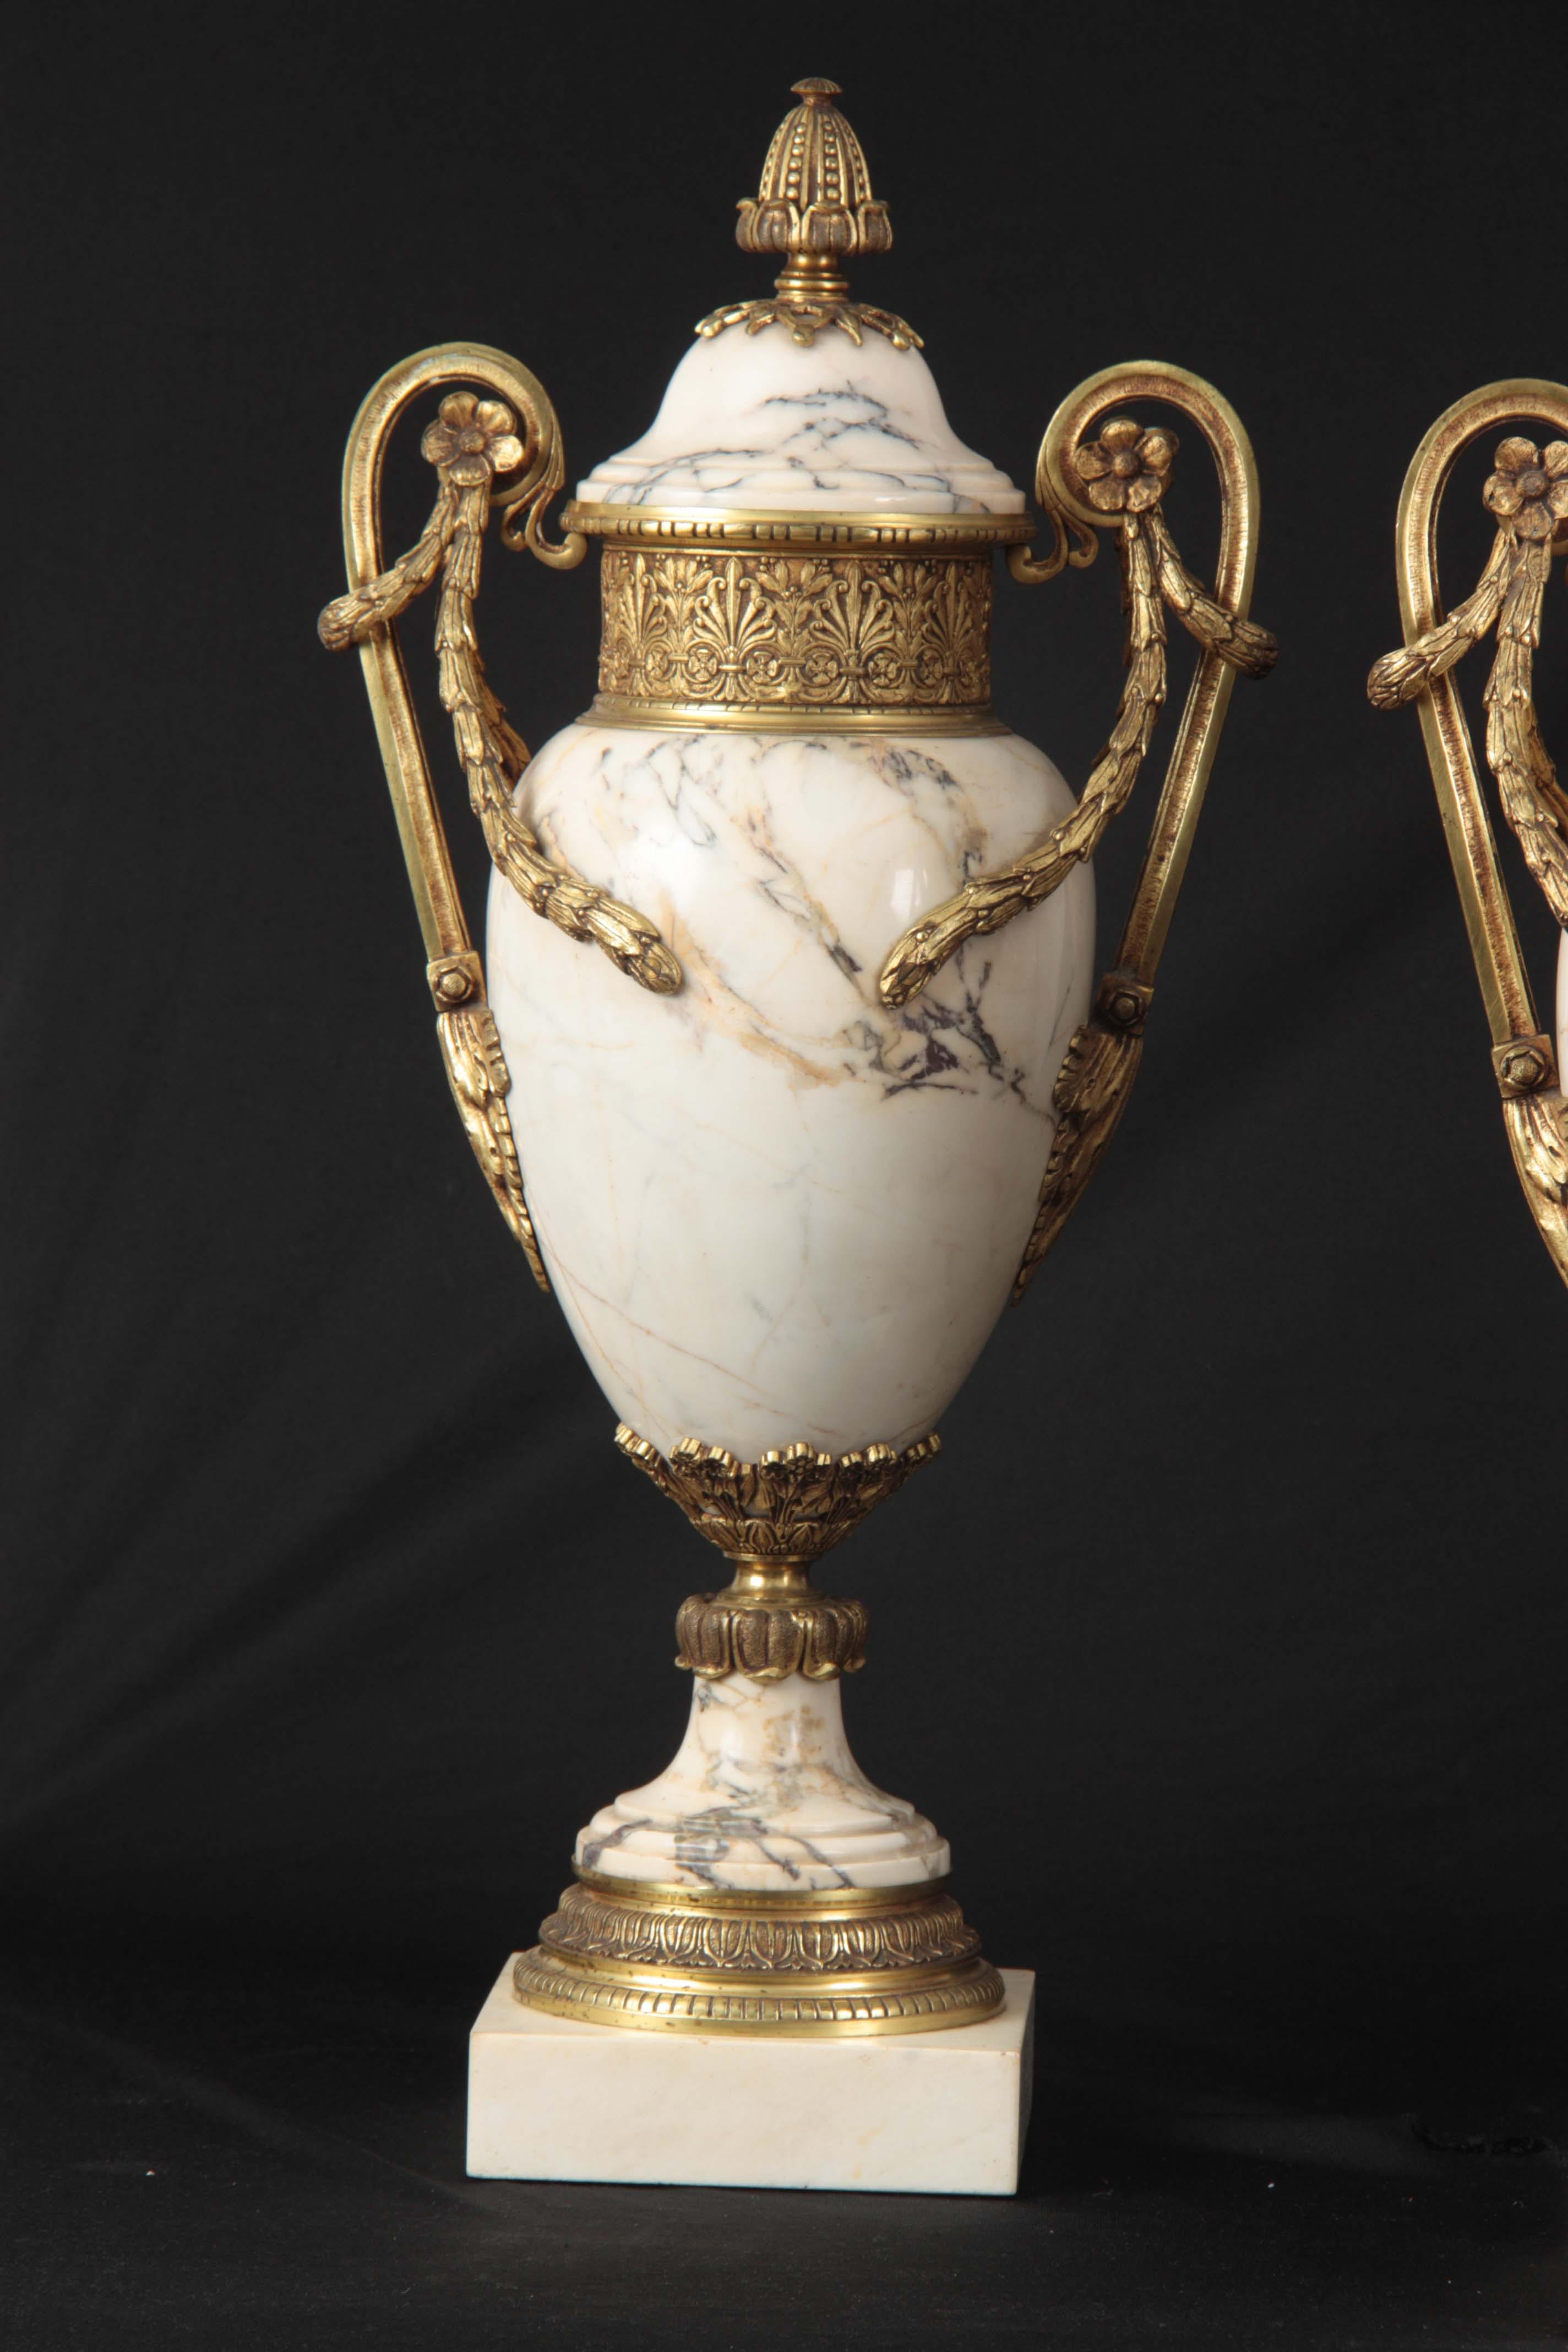 AN IMPRESSIVE PAIR OF FRENCH ORMOLU MOUNTED VEINED WHITE MARBLE CASOLETTES with floral swag work - Image 3 of 8